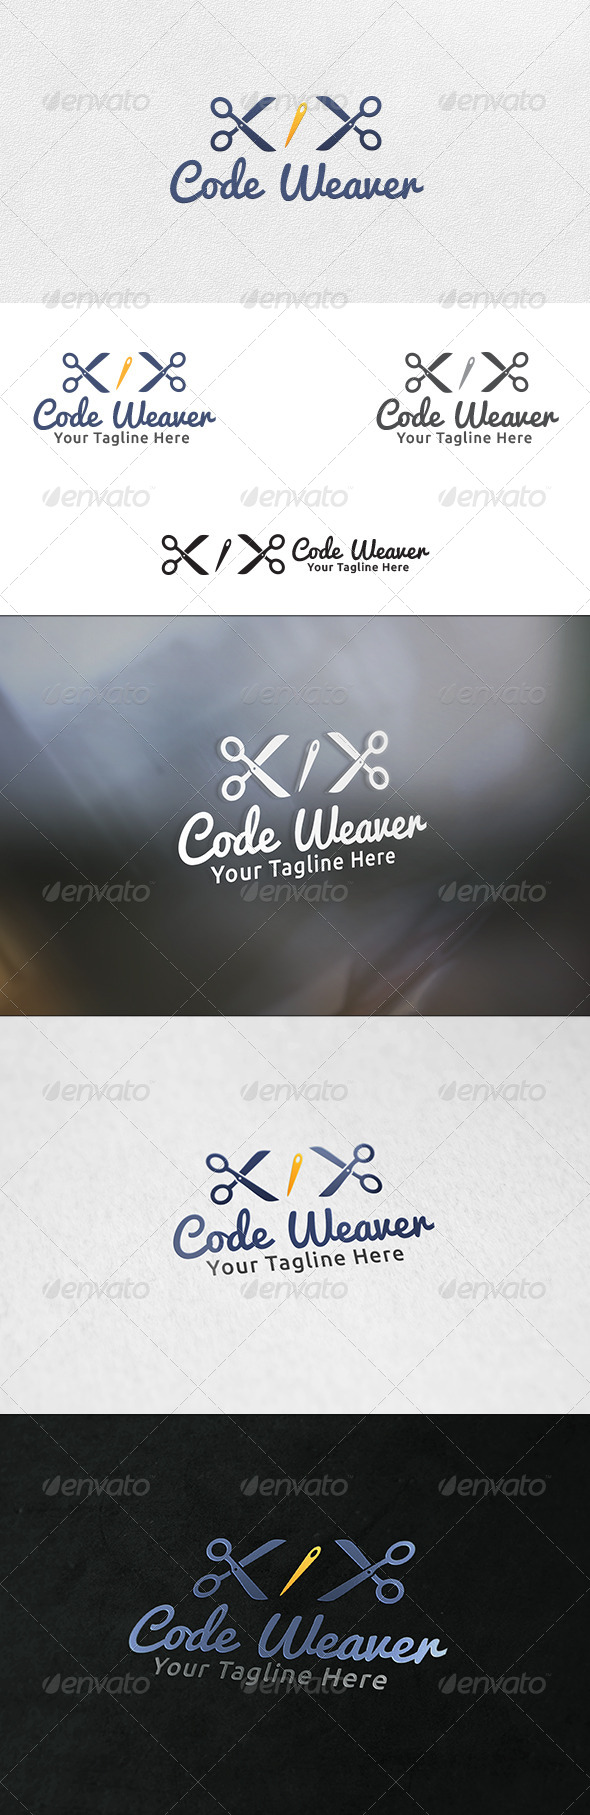 GraphicRiver Code Weaver Logo Template 6401625